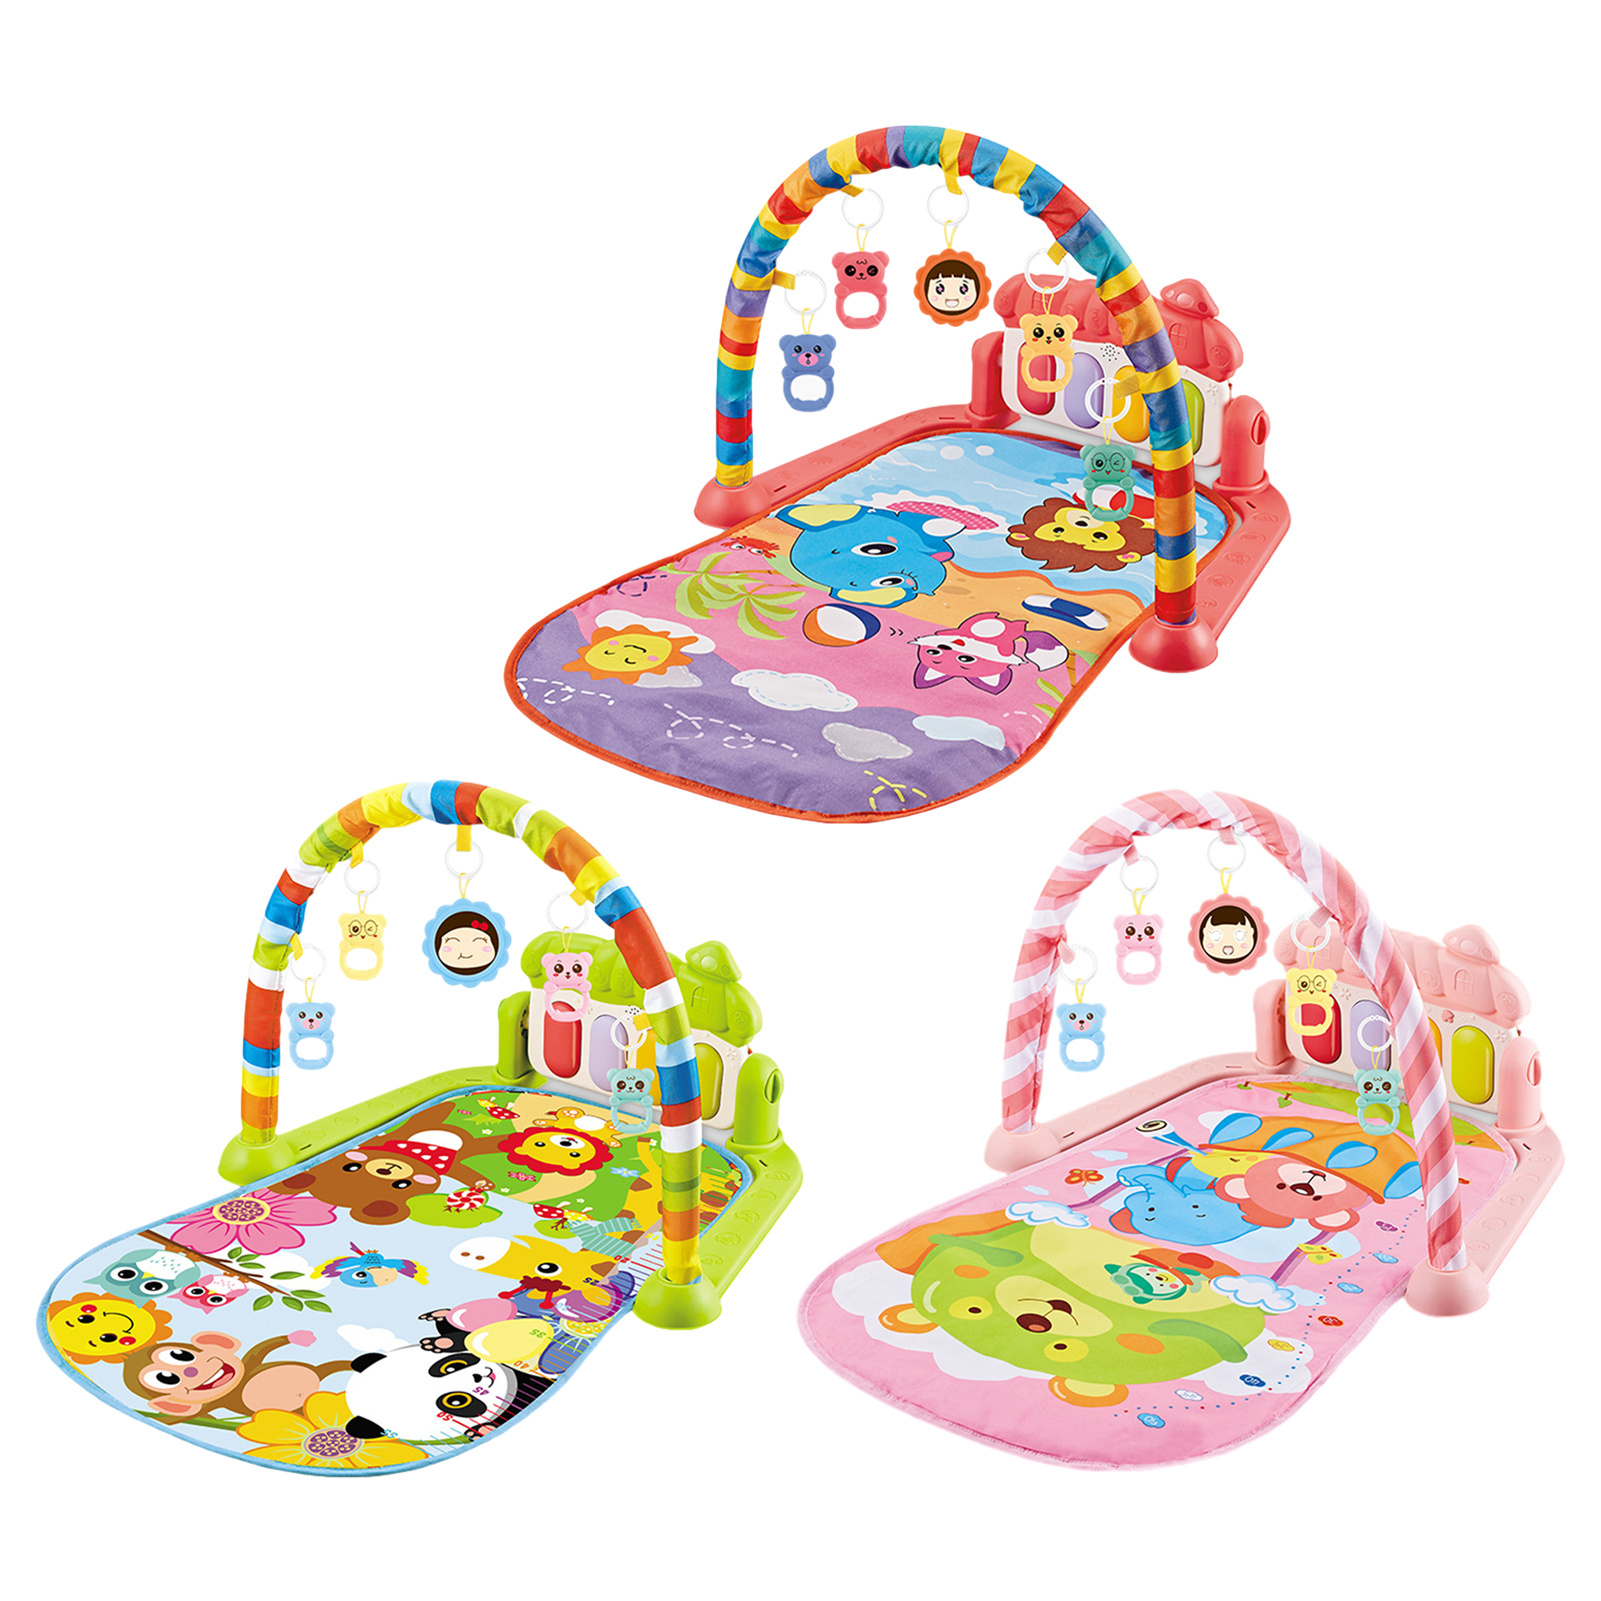 Baby Play Mat Toy Rug Baby Pedal Piano Play Music Crawling Mat Play Piano Keyboard Infant Playmat Activity Gym With Hanging Toys